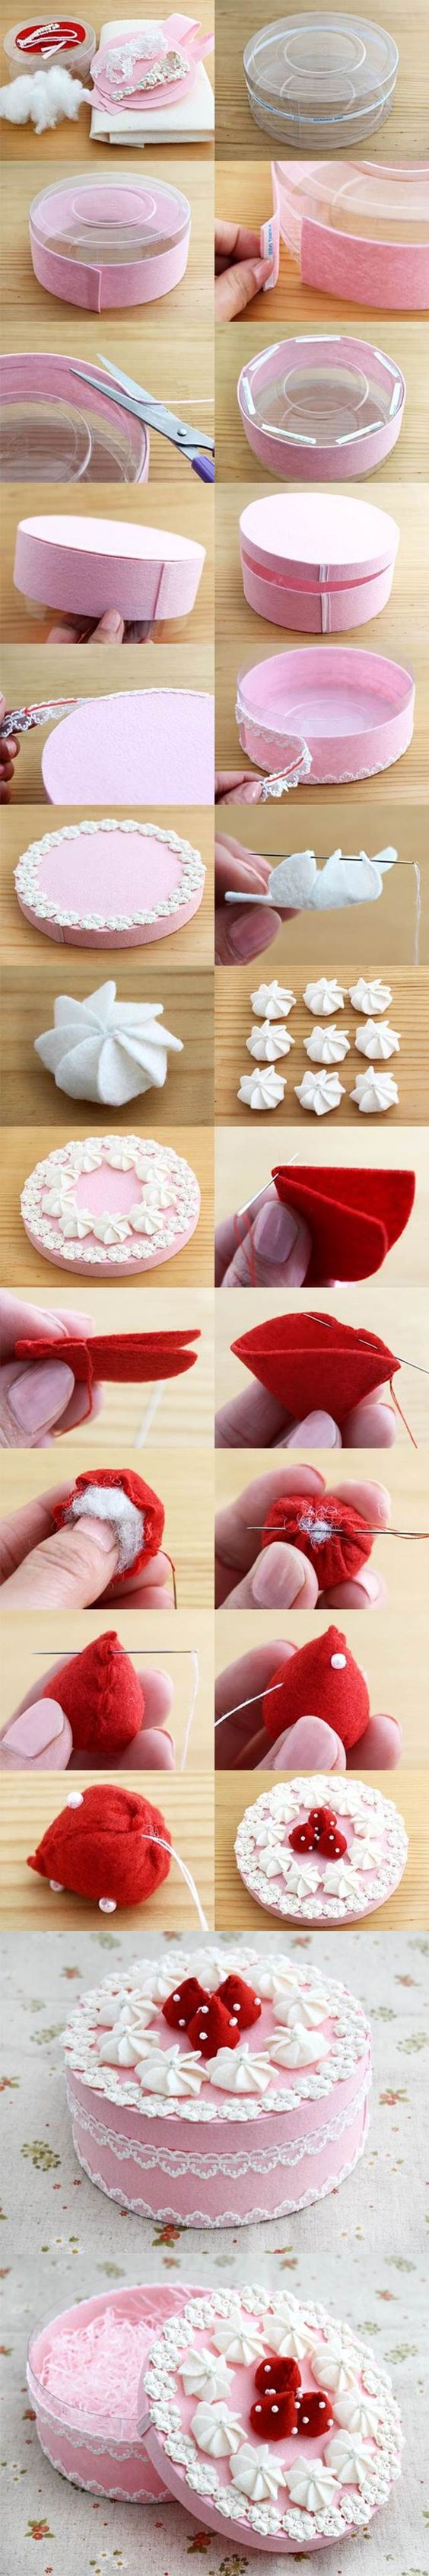 DIY Beautiful Gift Box Decorated Like a Cake | iCreativeIdeas.com LIKE Us on Facebook ==> https://www.facebook.com/icreativeideas: